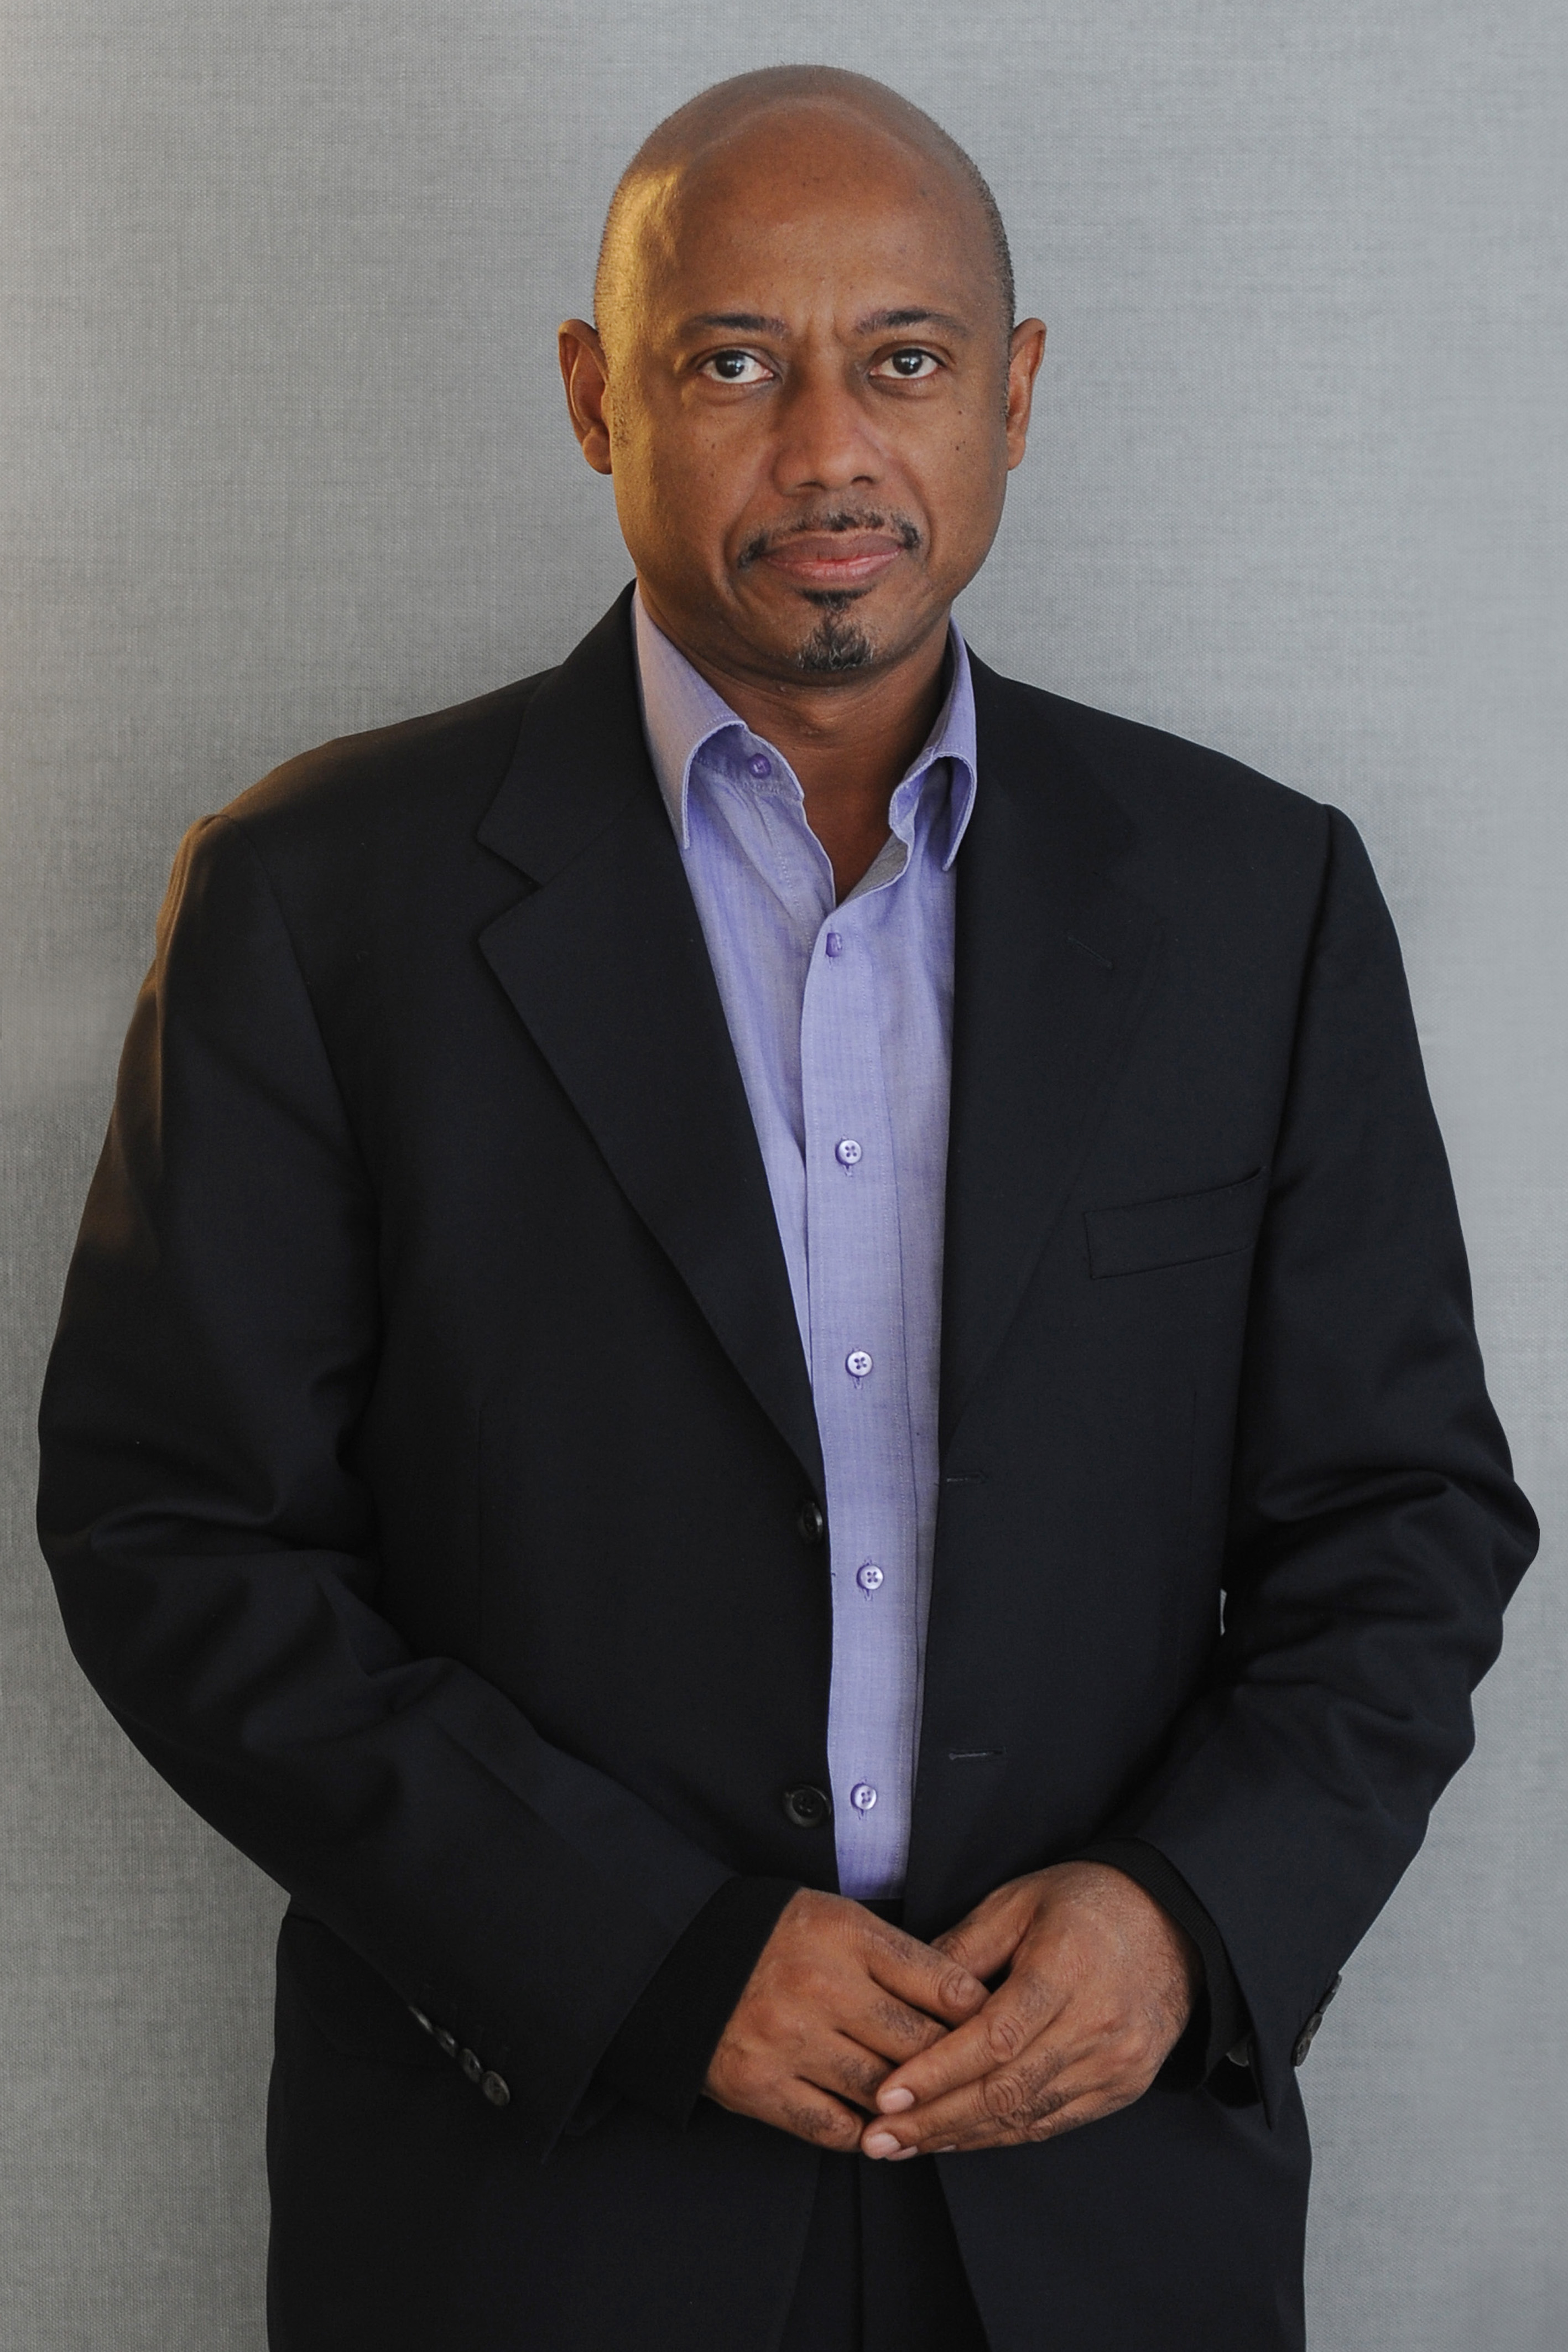 Raoul Peck. Photo by Lydie/ SIPA, courtesy of Magnolia Pictures.